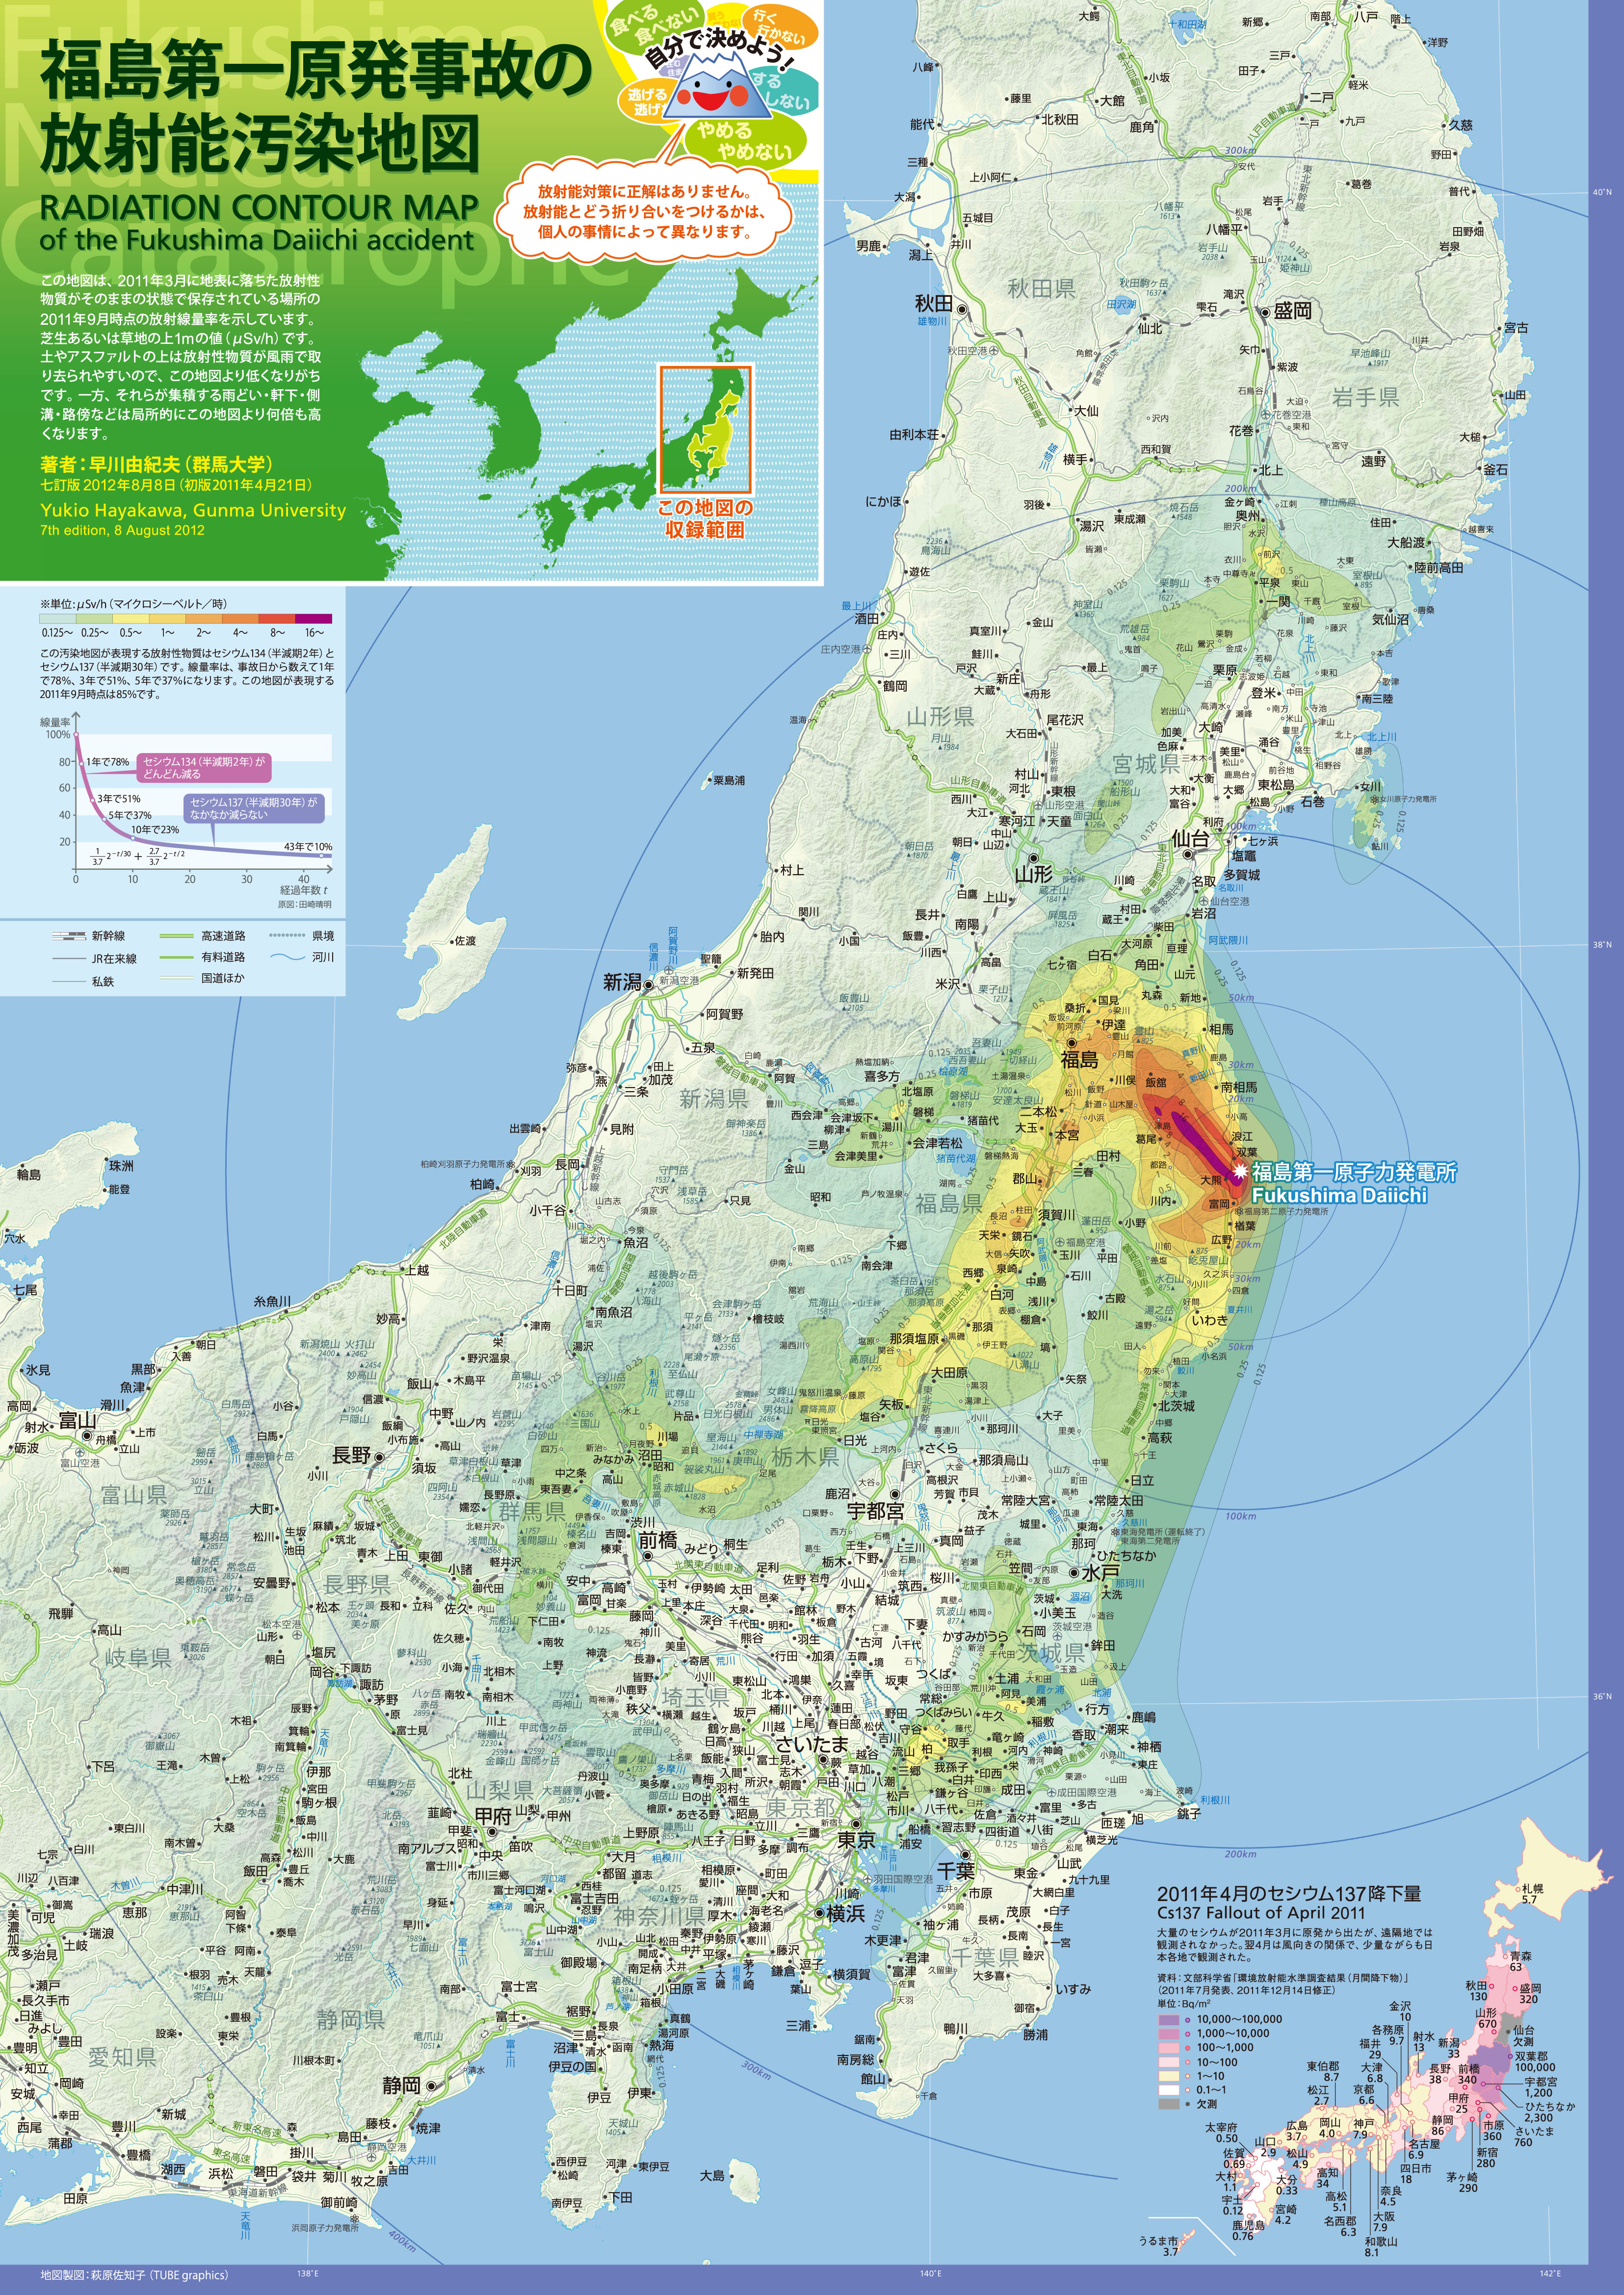 radioactive contamination – deposition or \'fallout\' maps – REMEMBER ...